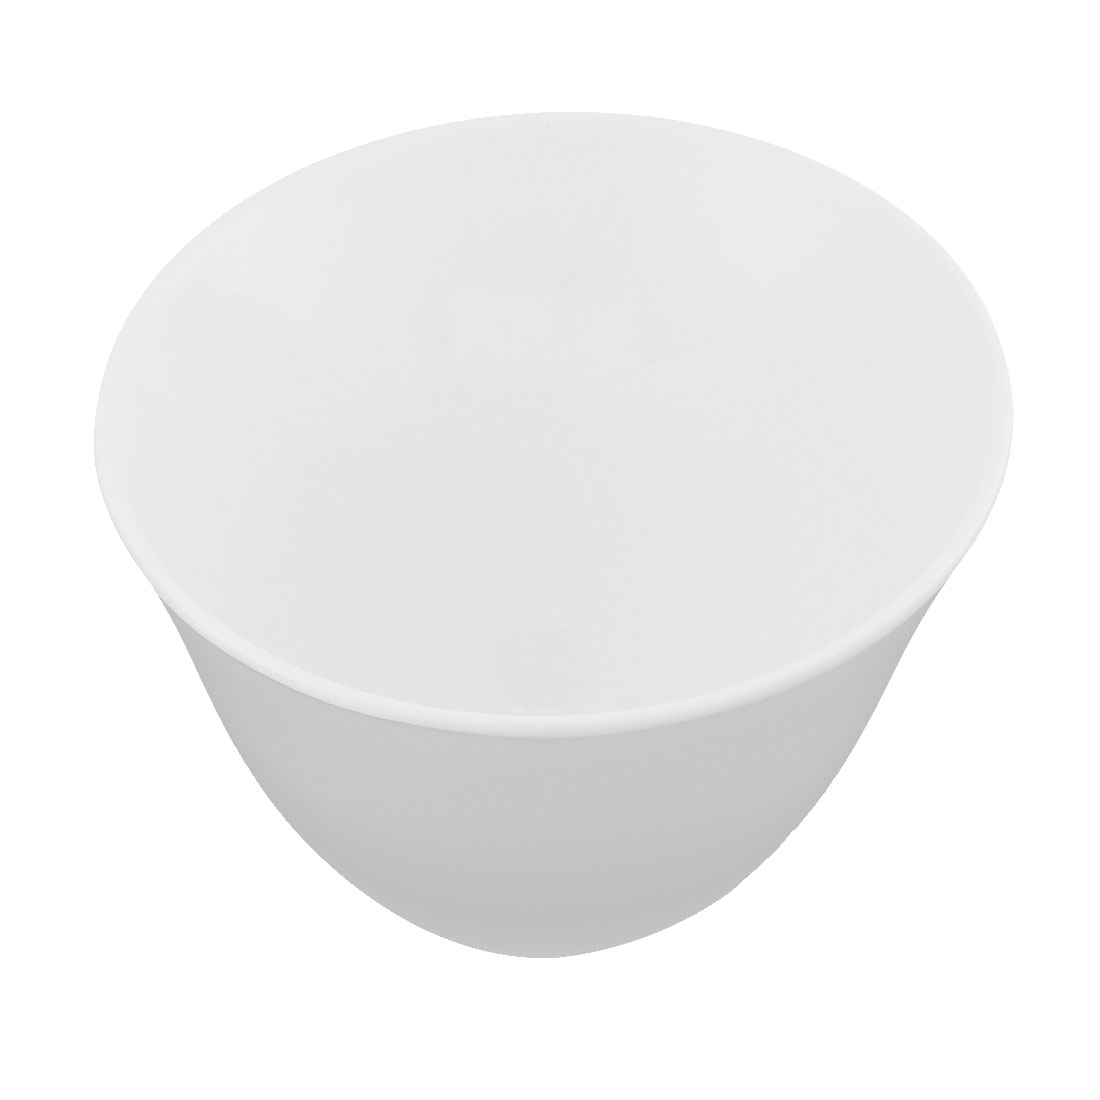 Home Restaurant Plastic Tall Slant Cut Serving Bowl